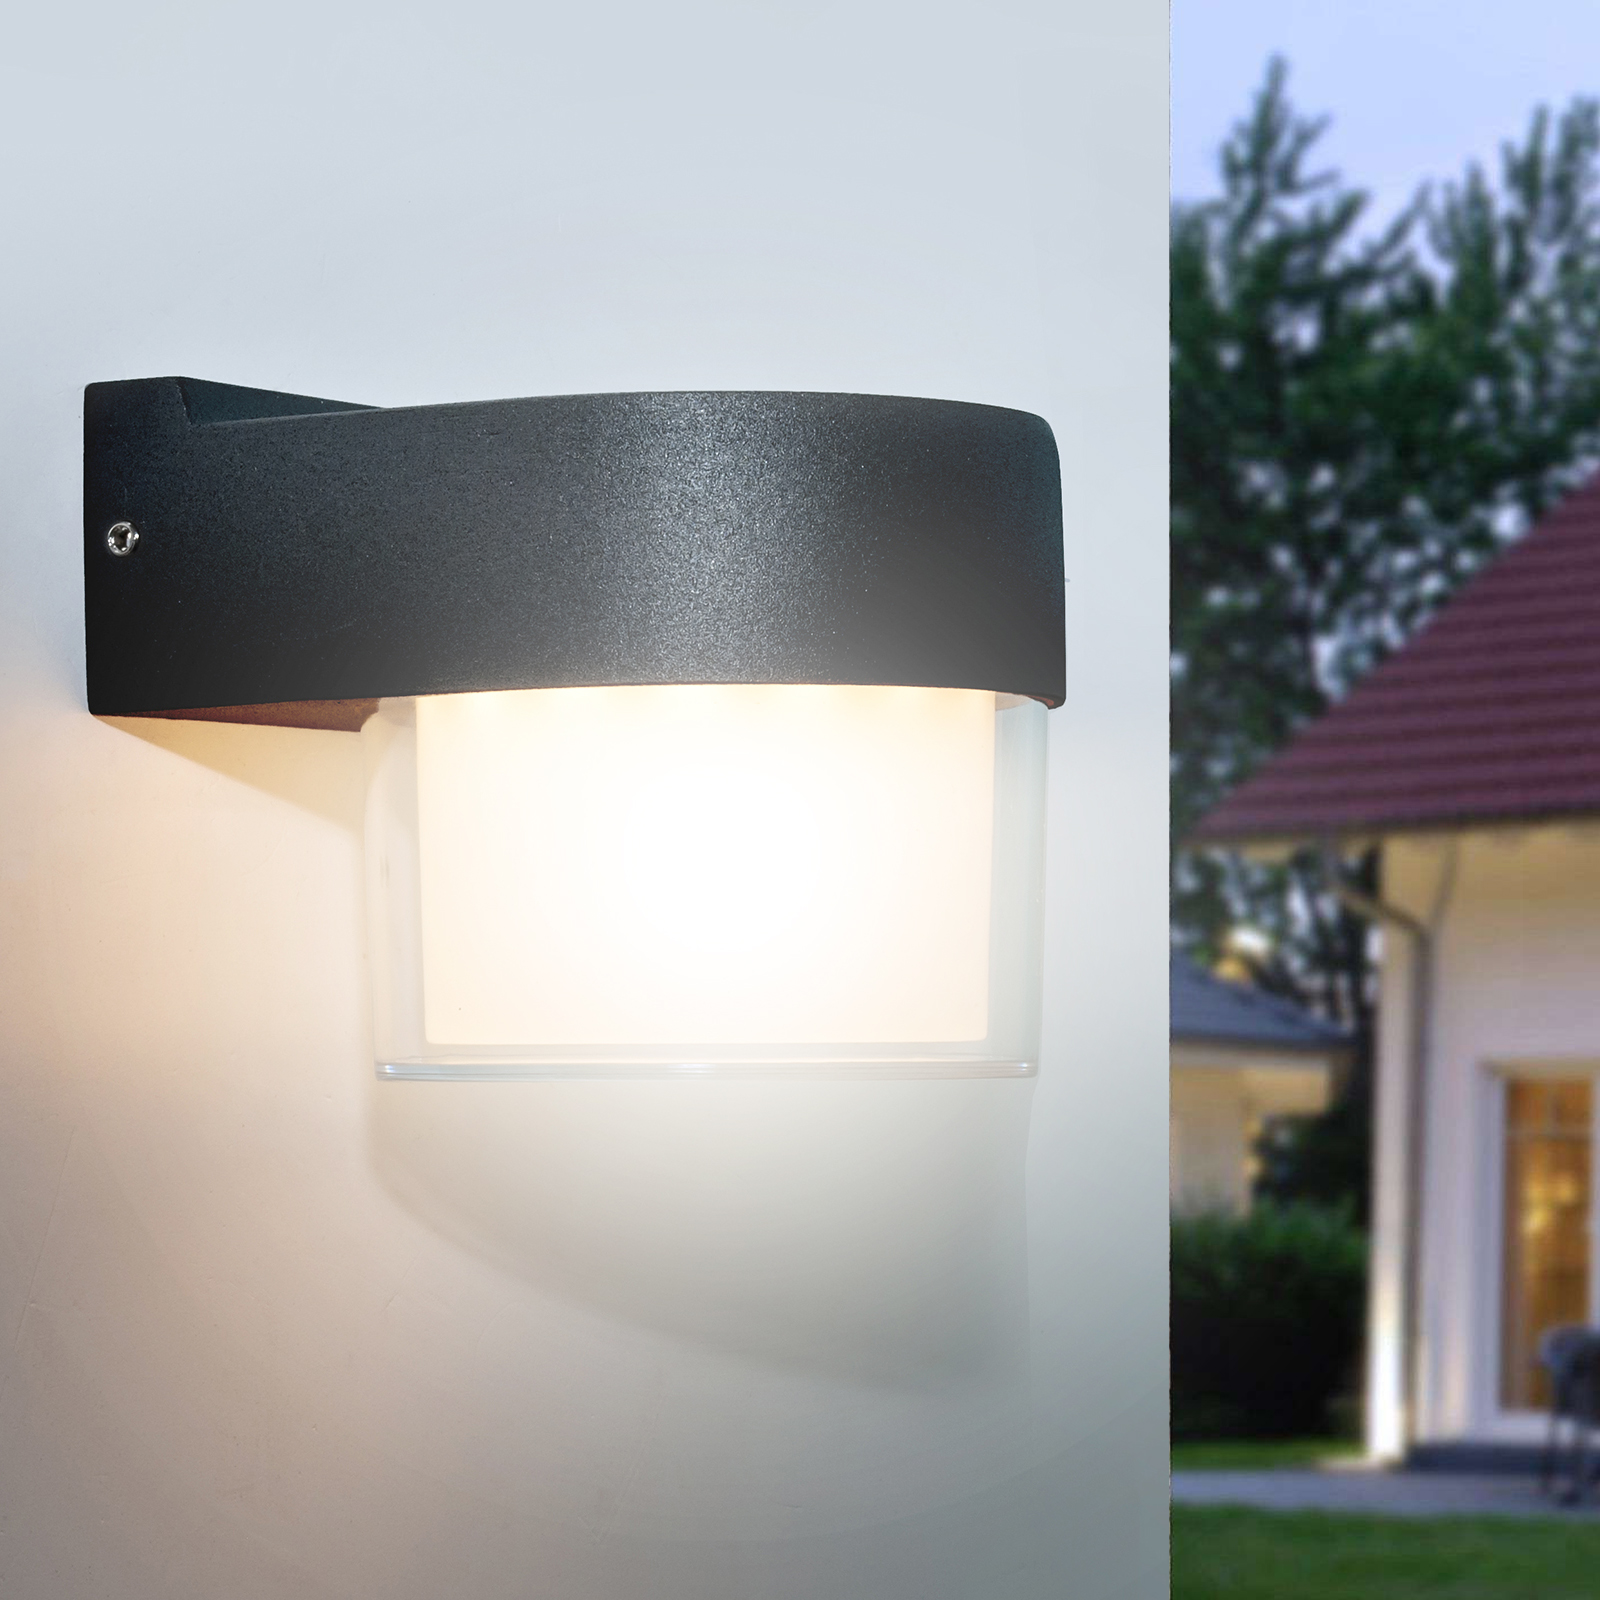 Outdoor LED wall lamp modern wall lamp 7W garden entrance light IP65 230V